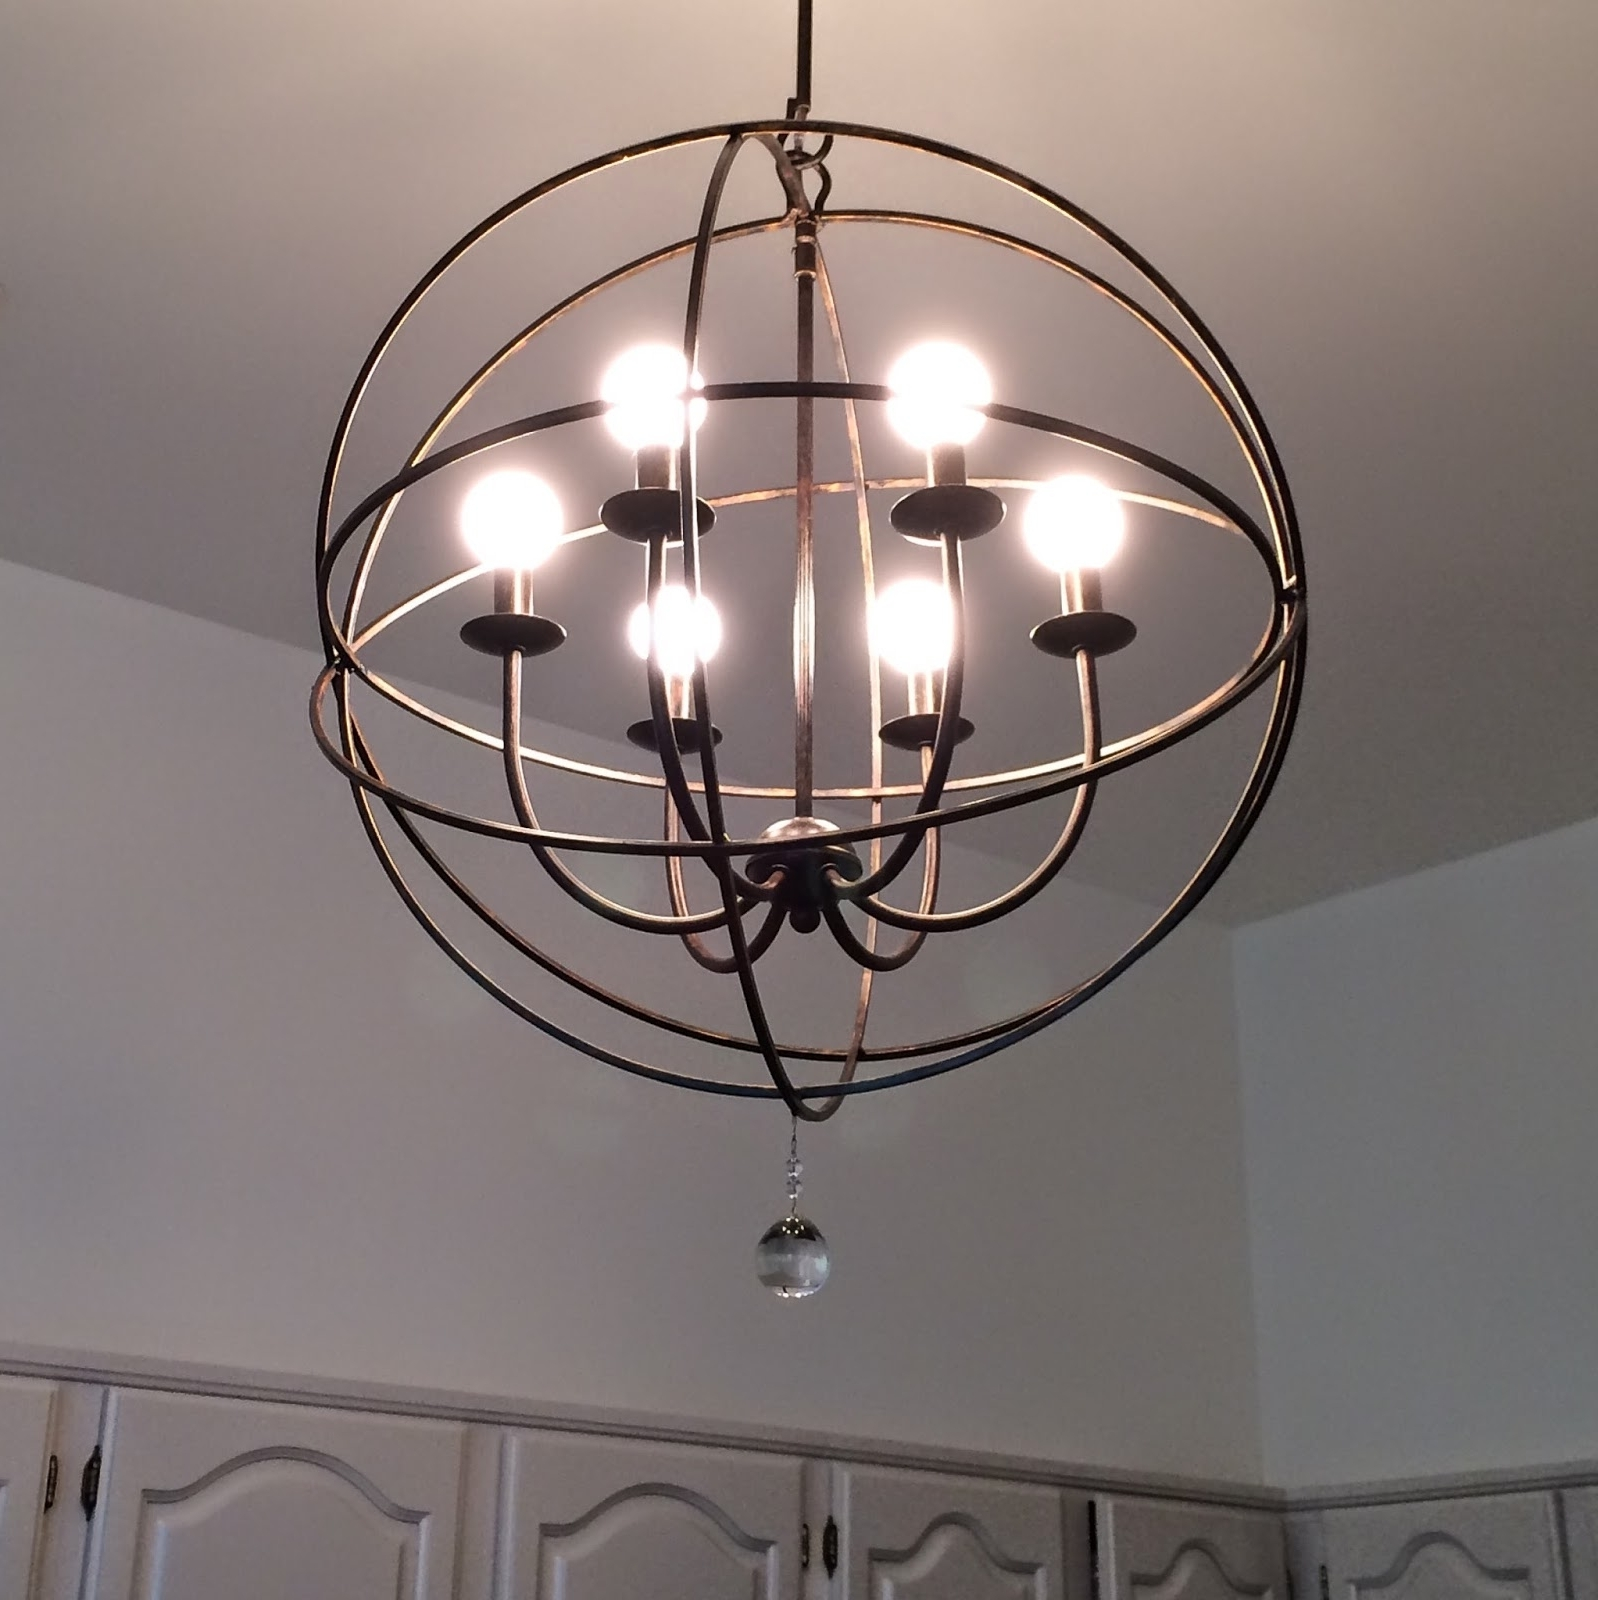 Preferred Orb Chandelier With Regard To Lighting: Black Iron 6 Light Orb Chandelier For For Charming Kitchen (View 18 of 20)